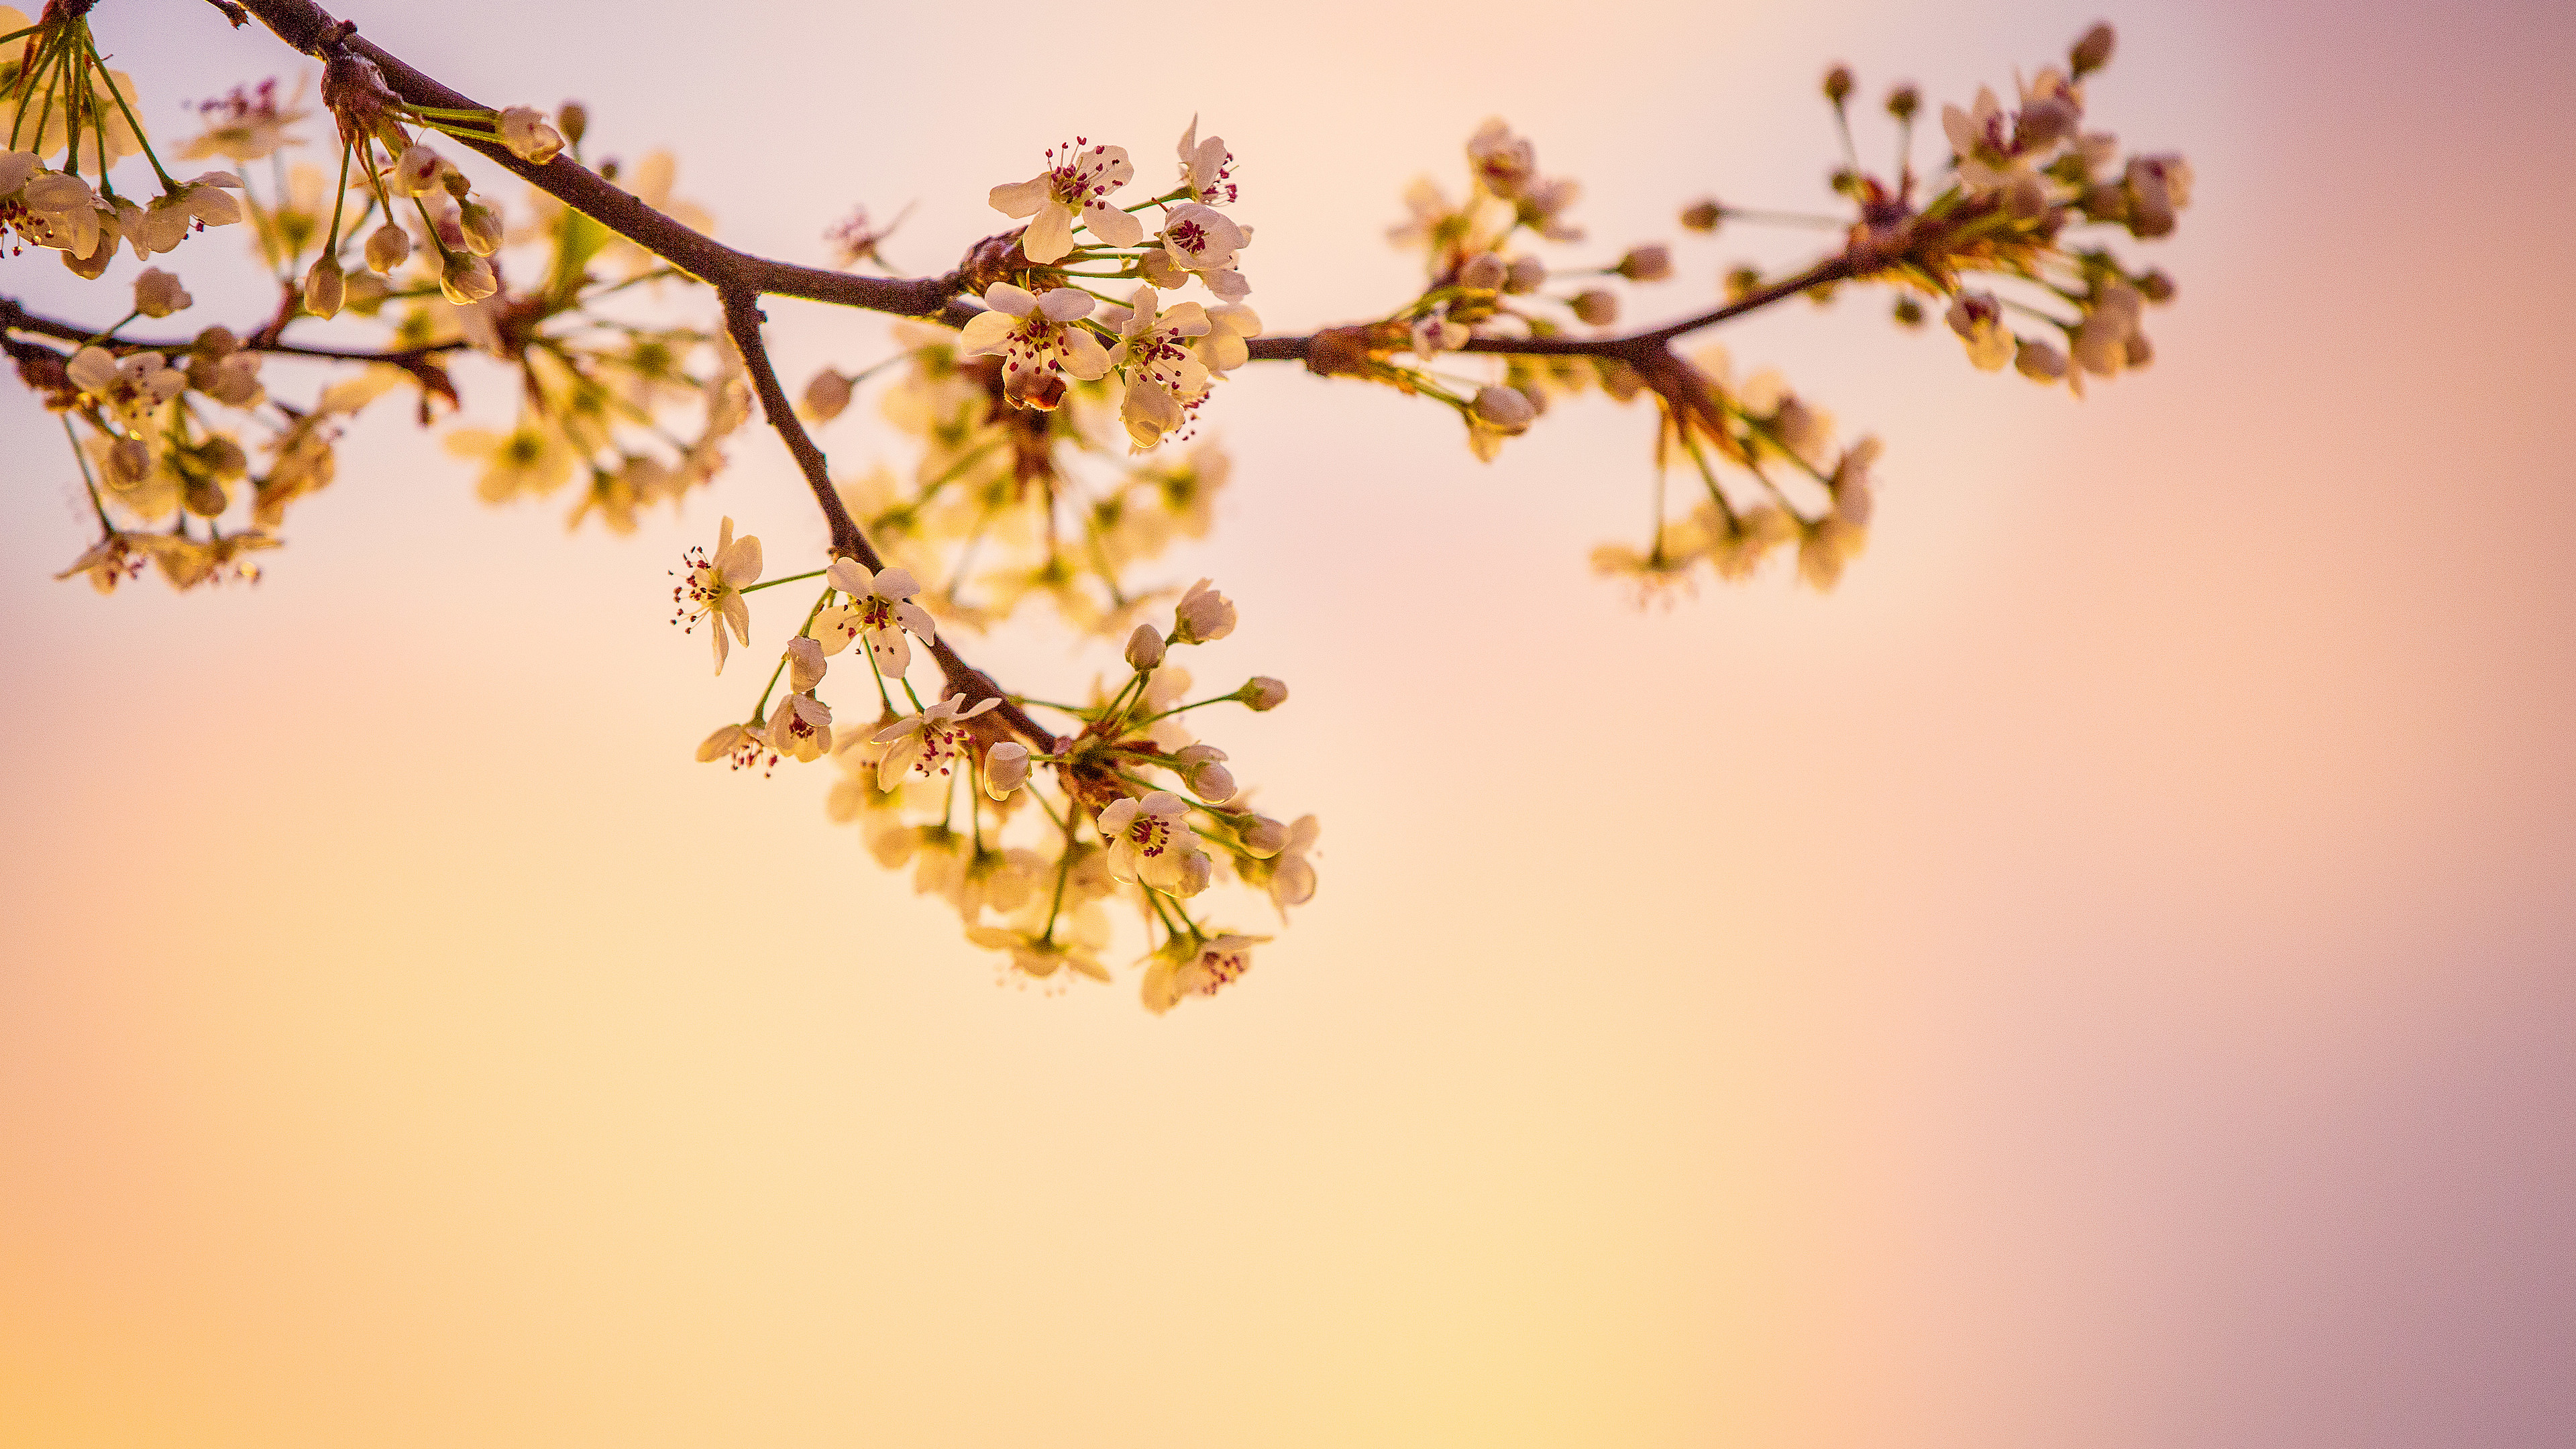 white cherry blossoms 5k 1540136533 - White Cherry Blossoms 5k - nature wallpapers, hd-wallpapers, flowers wallpapers, cherry wallpapers, 5k wallpapers, 4k-wallpapers